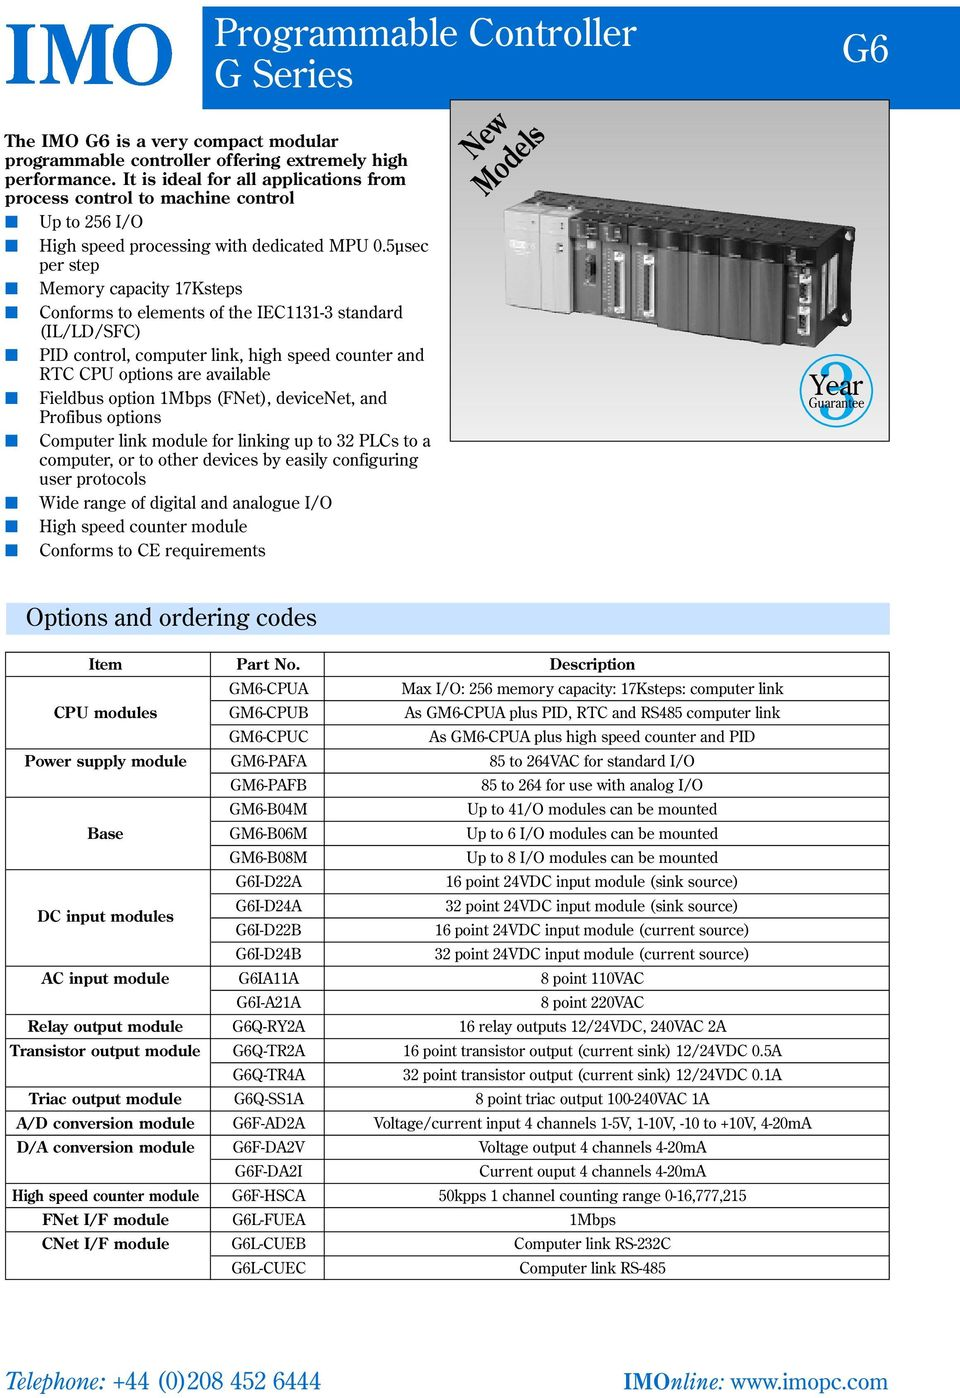 5µsec per step Memory capacity 17Ksteps Conforms to elements of the IEC1131-3 standard (IL/LD/SFC) PID control, computer link, high speed counter and RTC CPU options are available Fieldbus option